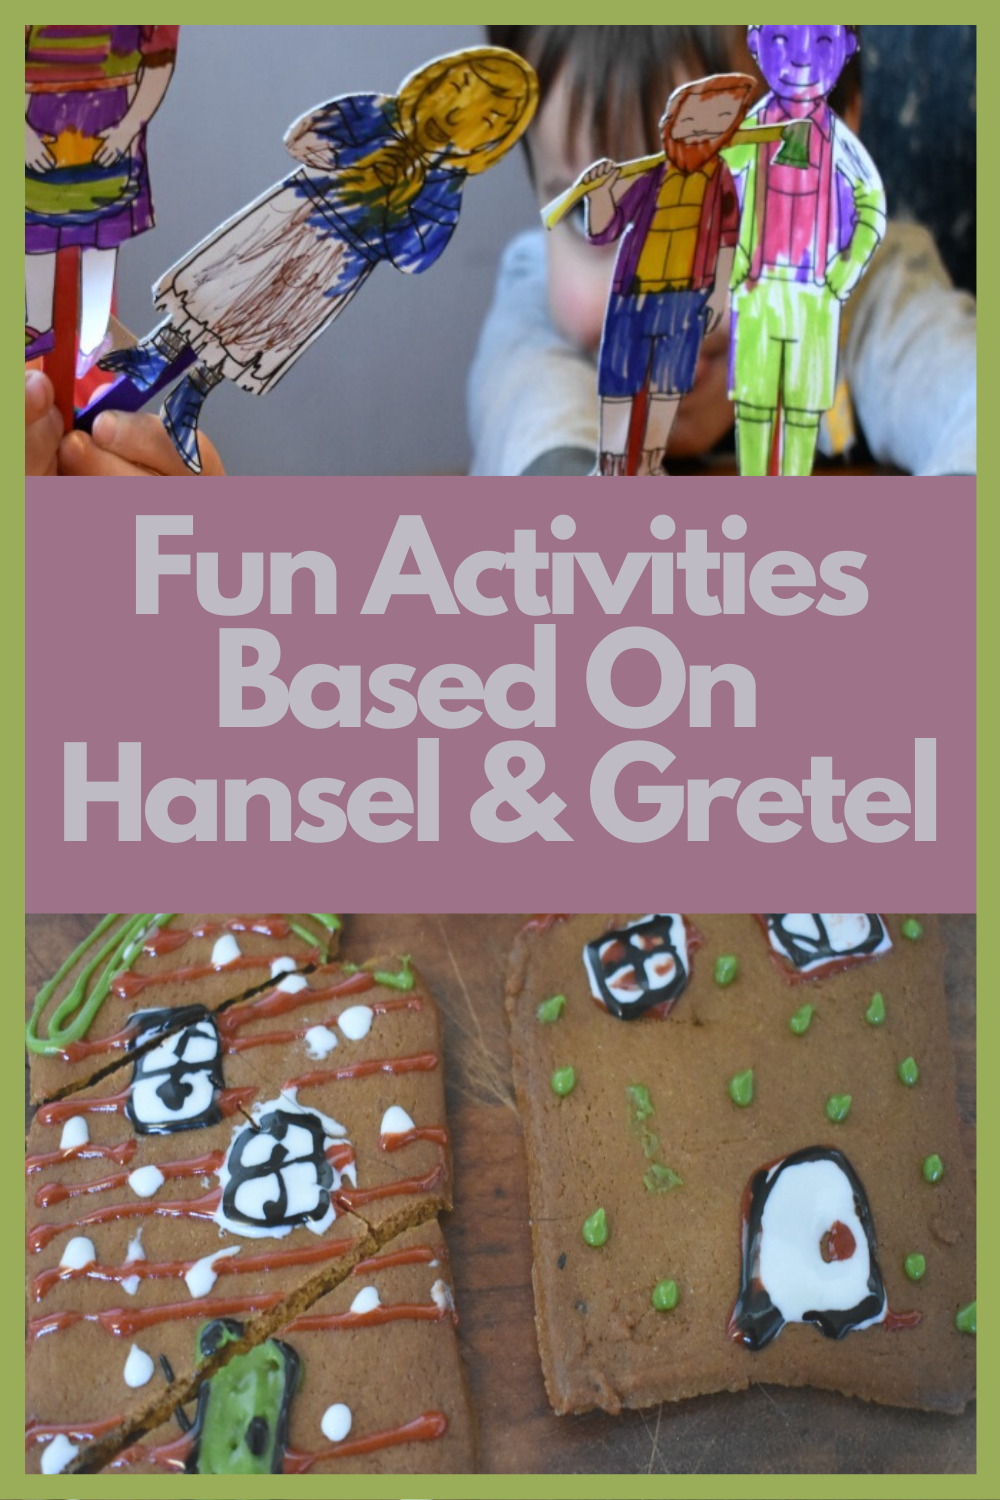 Hansel & Gretel Fairy Tale book crafts and activities for children